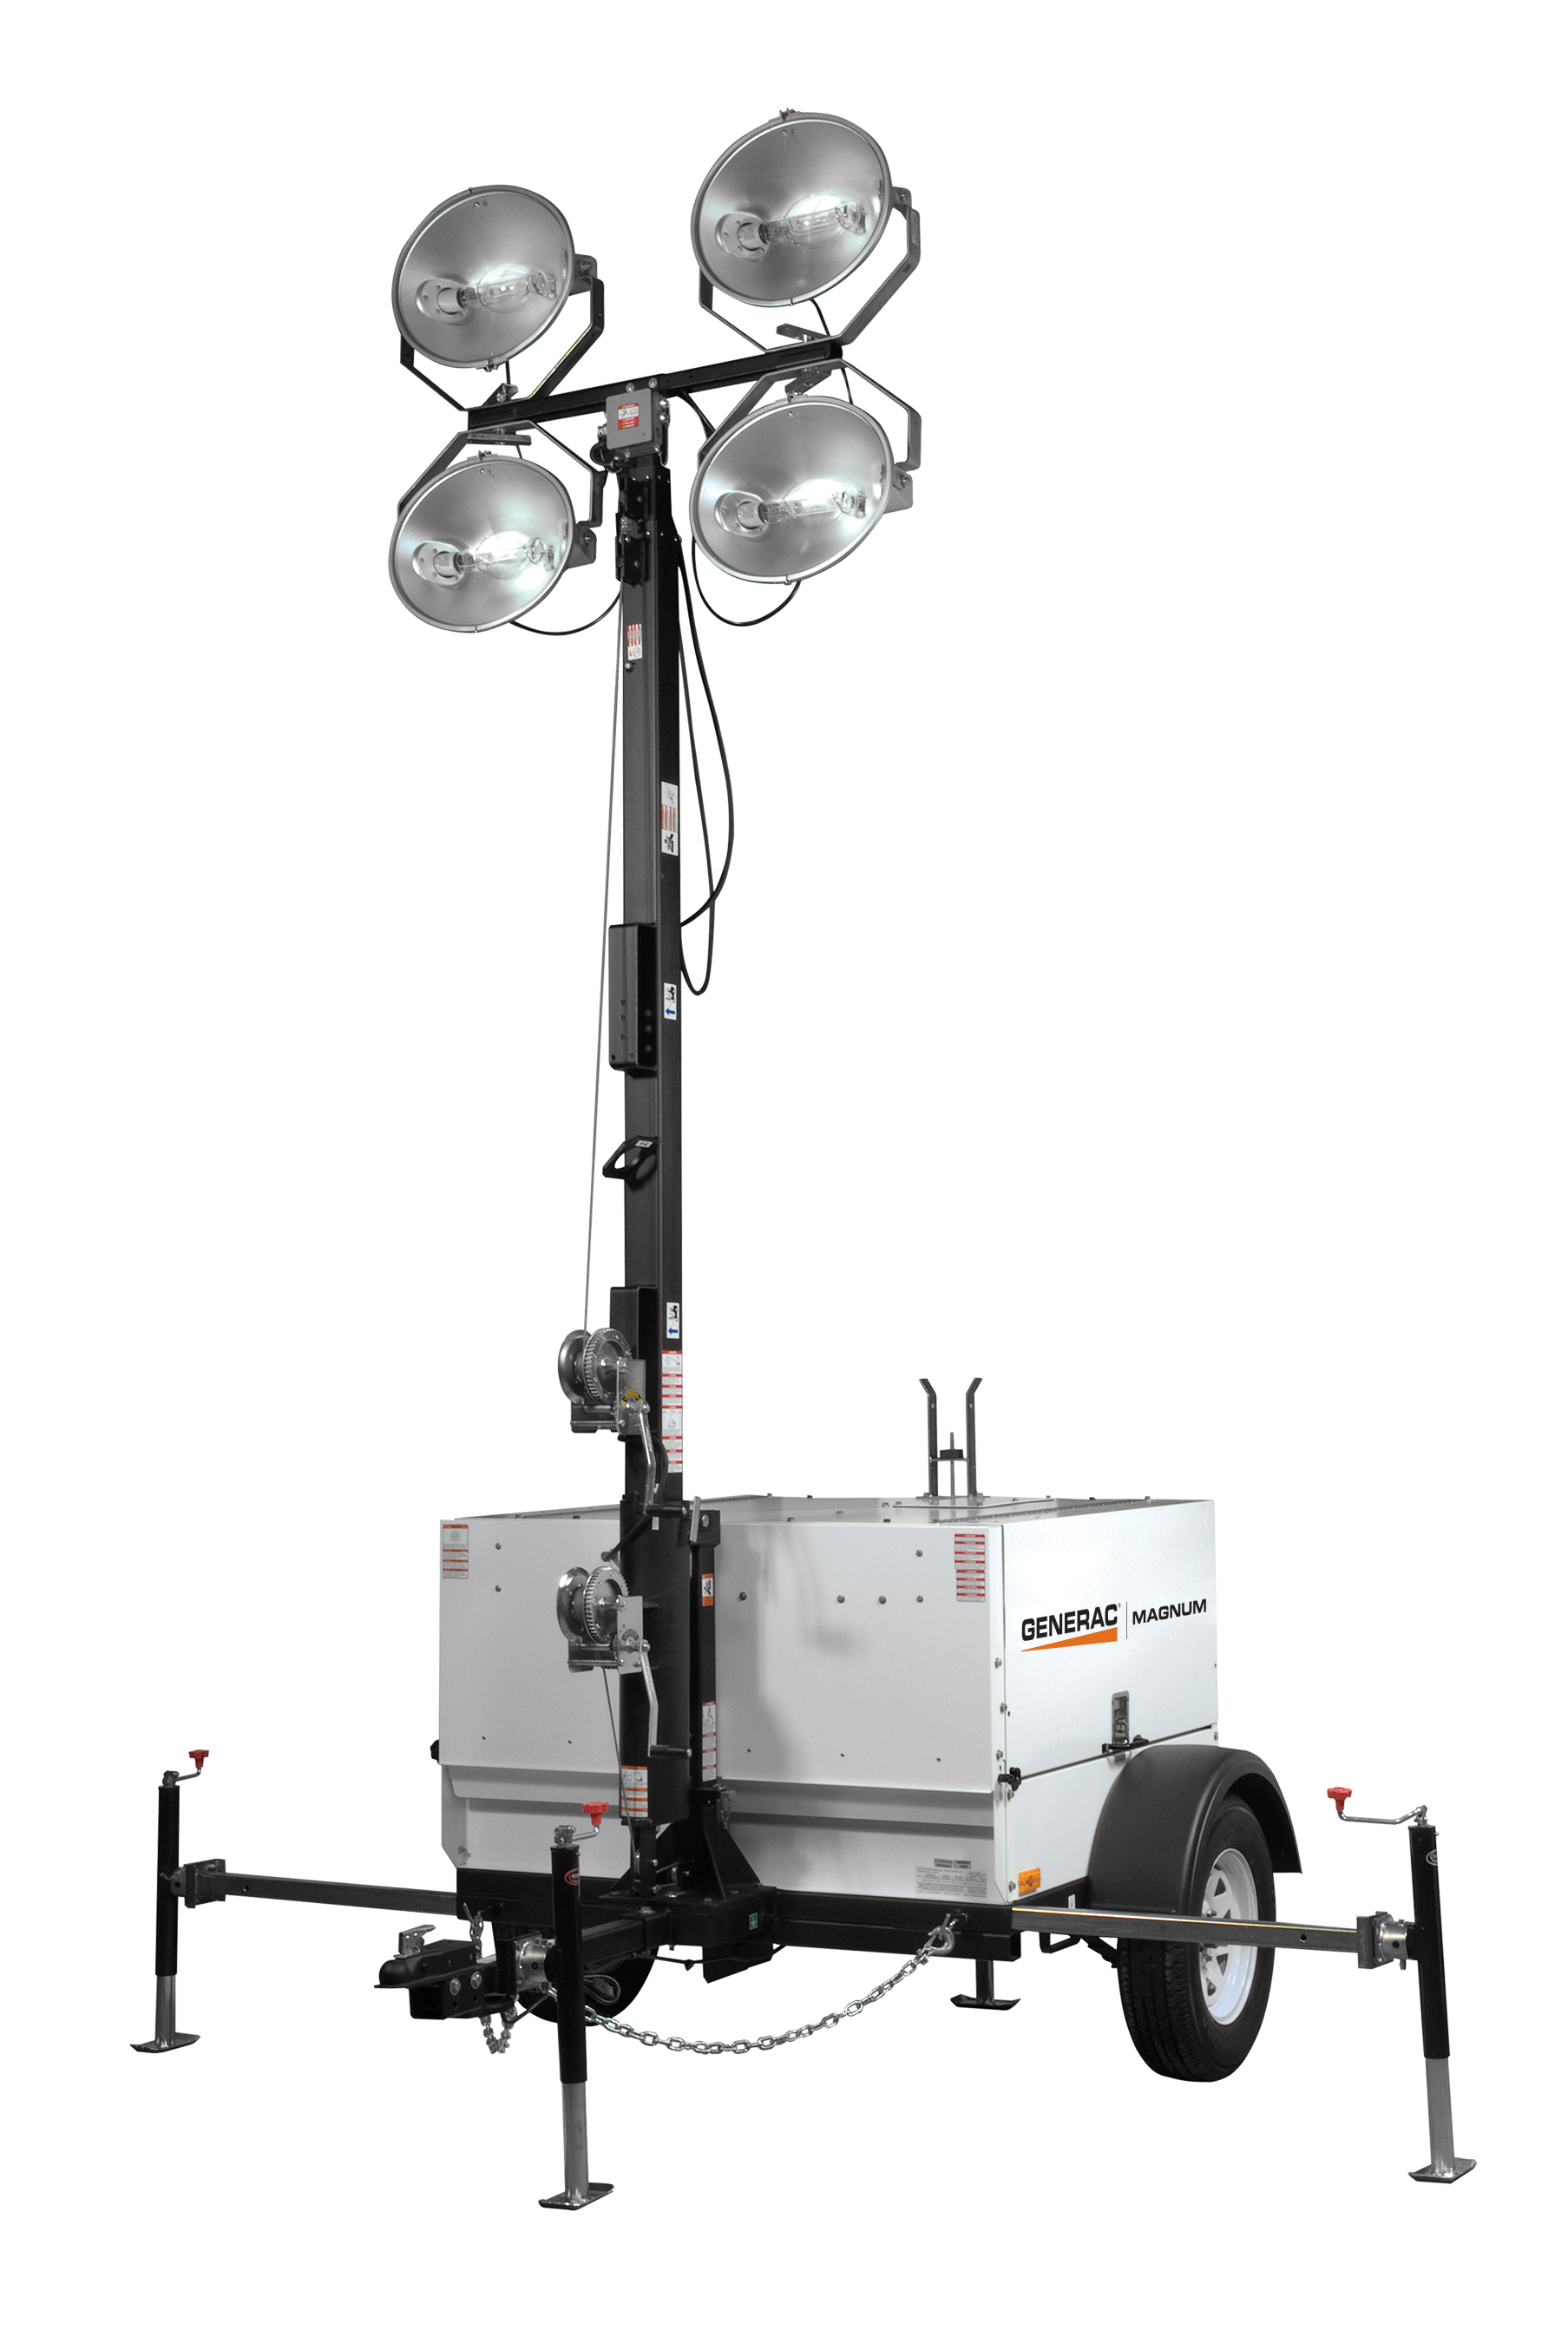 generac mlt5080 mobile metal halide light tower